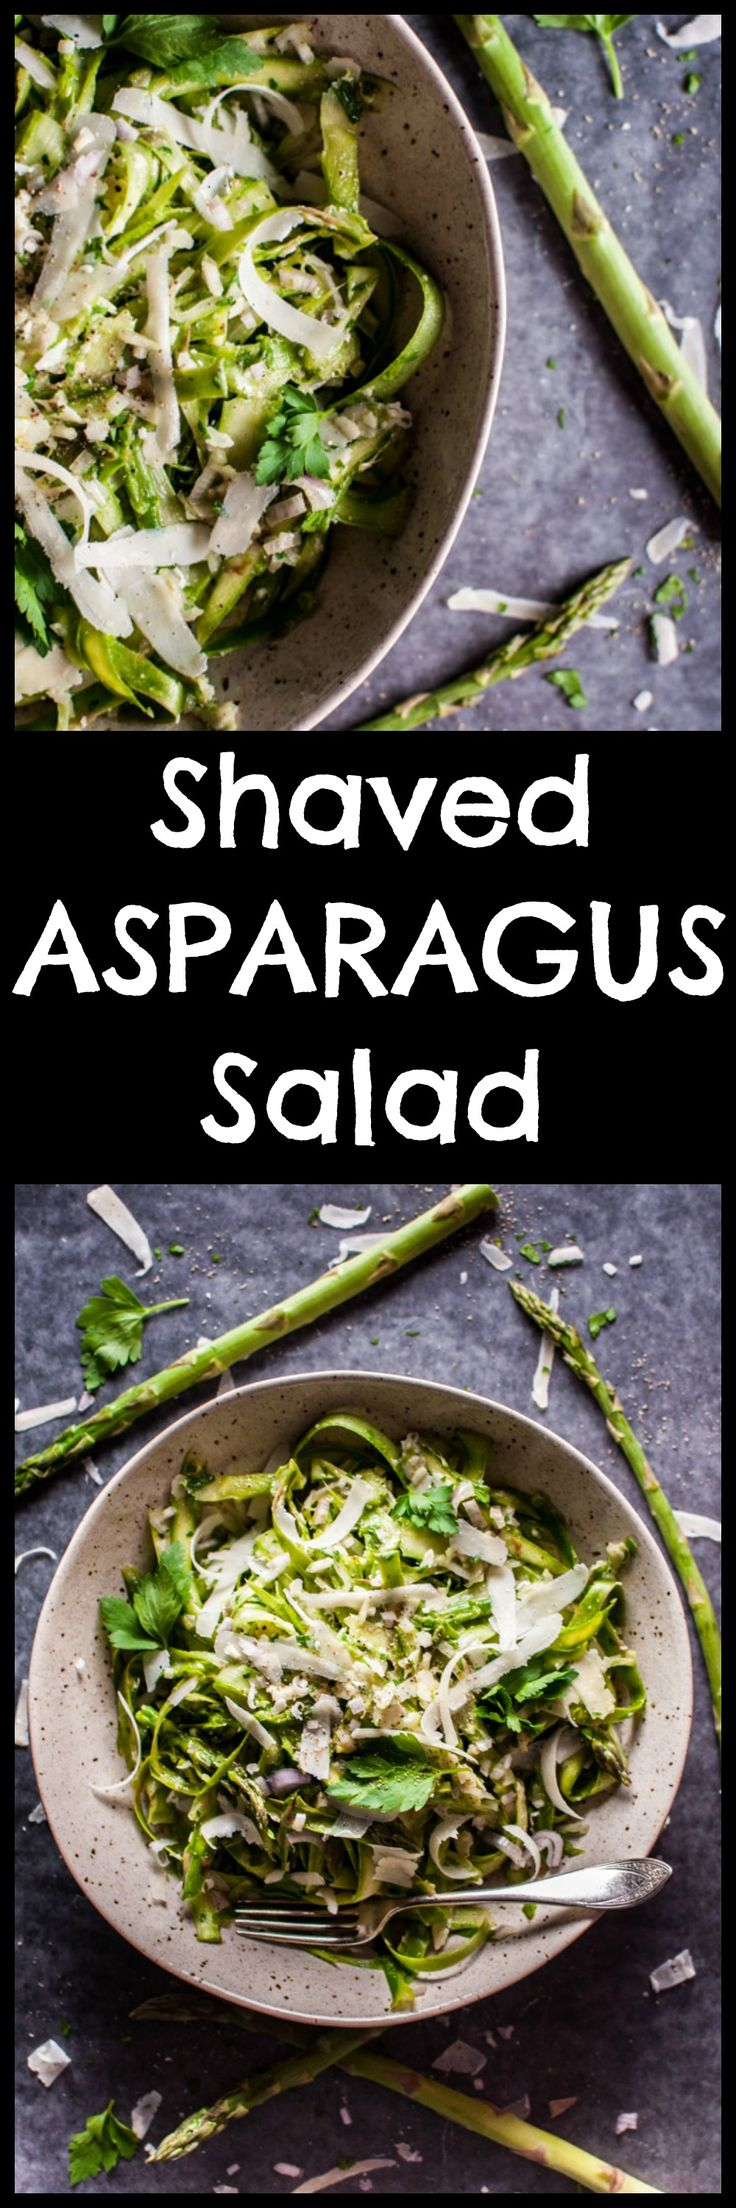 This shaved asparagus salad comes to life with a delicious lemon-Dijon dressing, shallot, fresh parsley, and parmesan cheese. It makes an awesome side salad and will take any meal to the next level! Pin for later :)